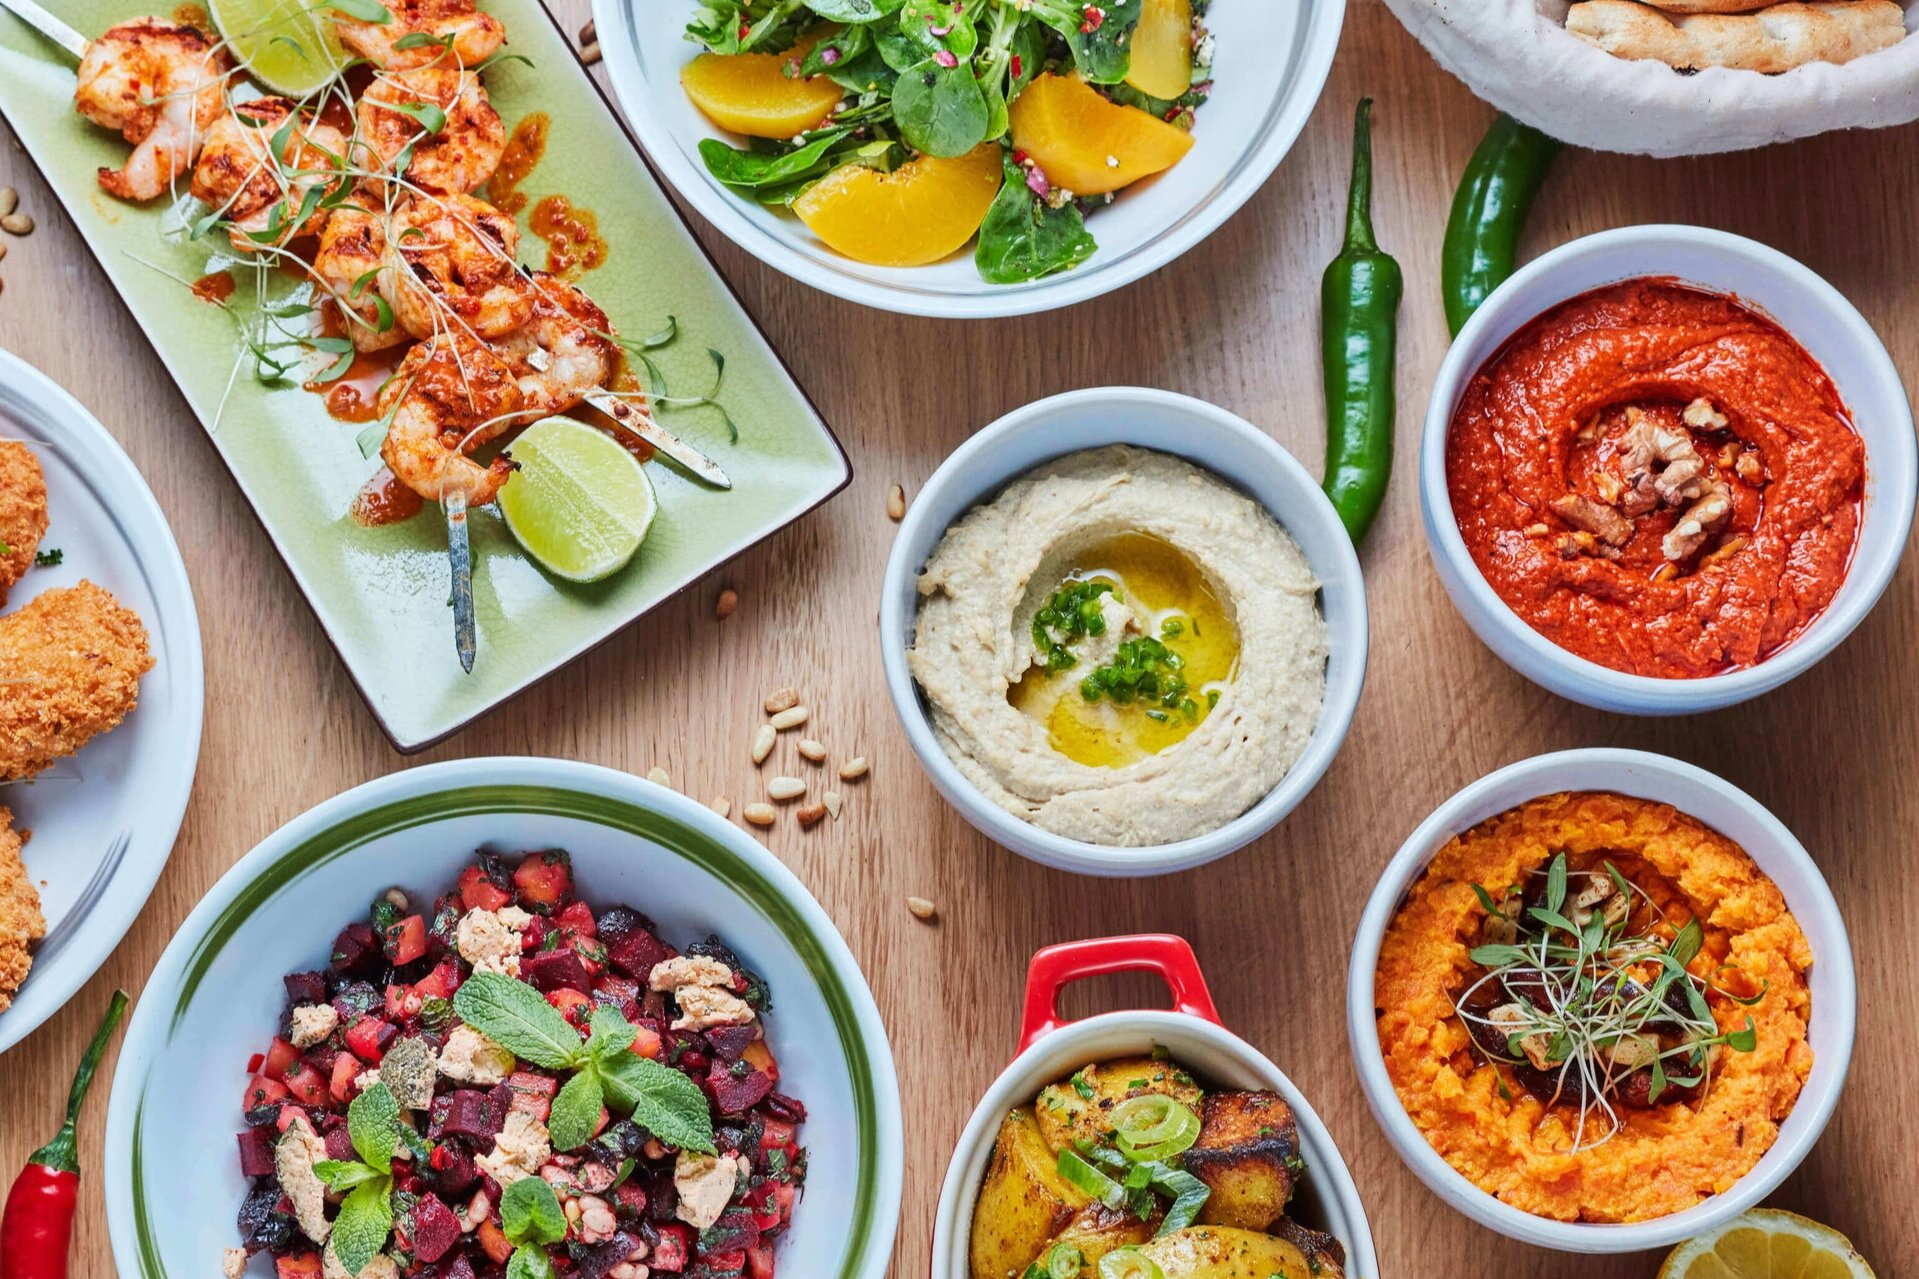 Table filled with bowls of food from Ceru like hummus and dips with chillies and nuts on a wooden table